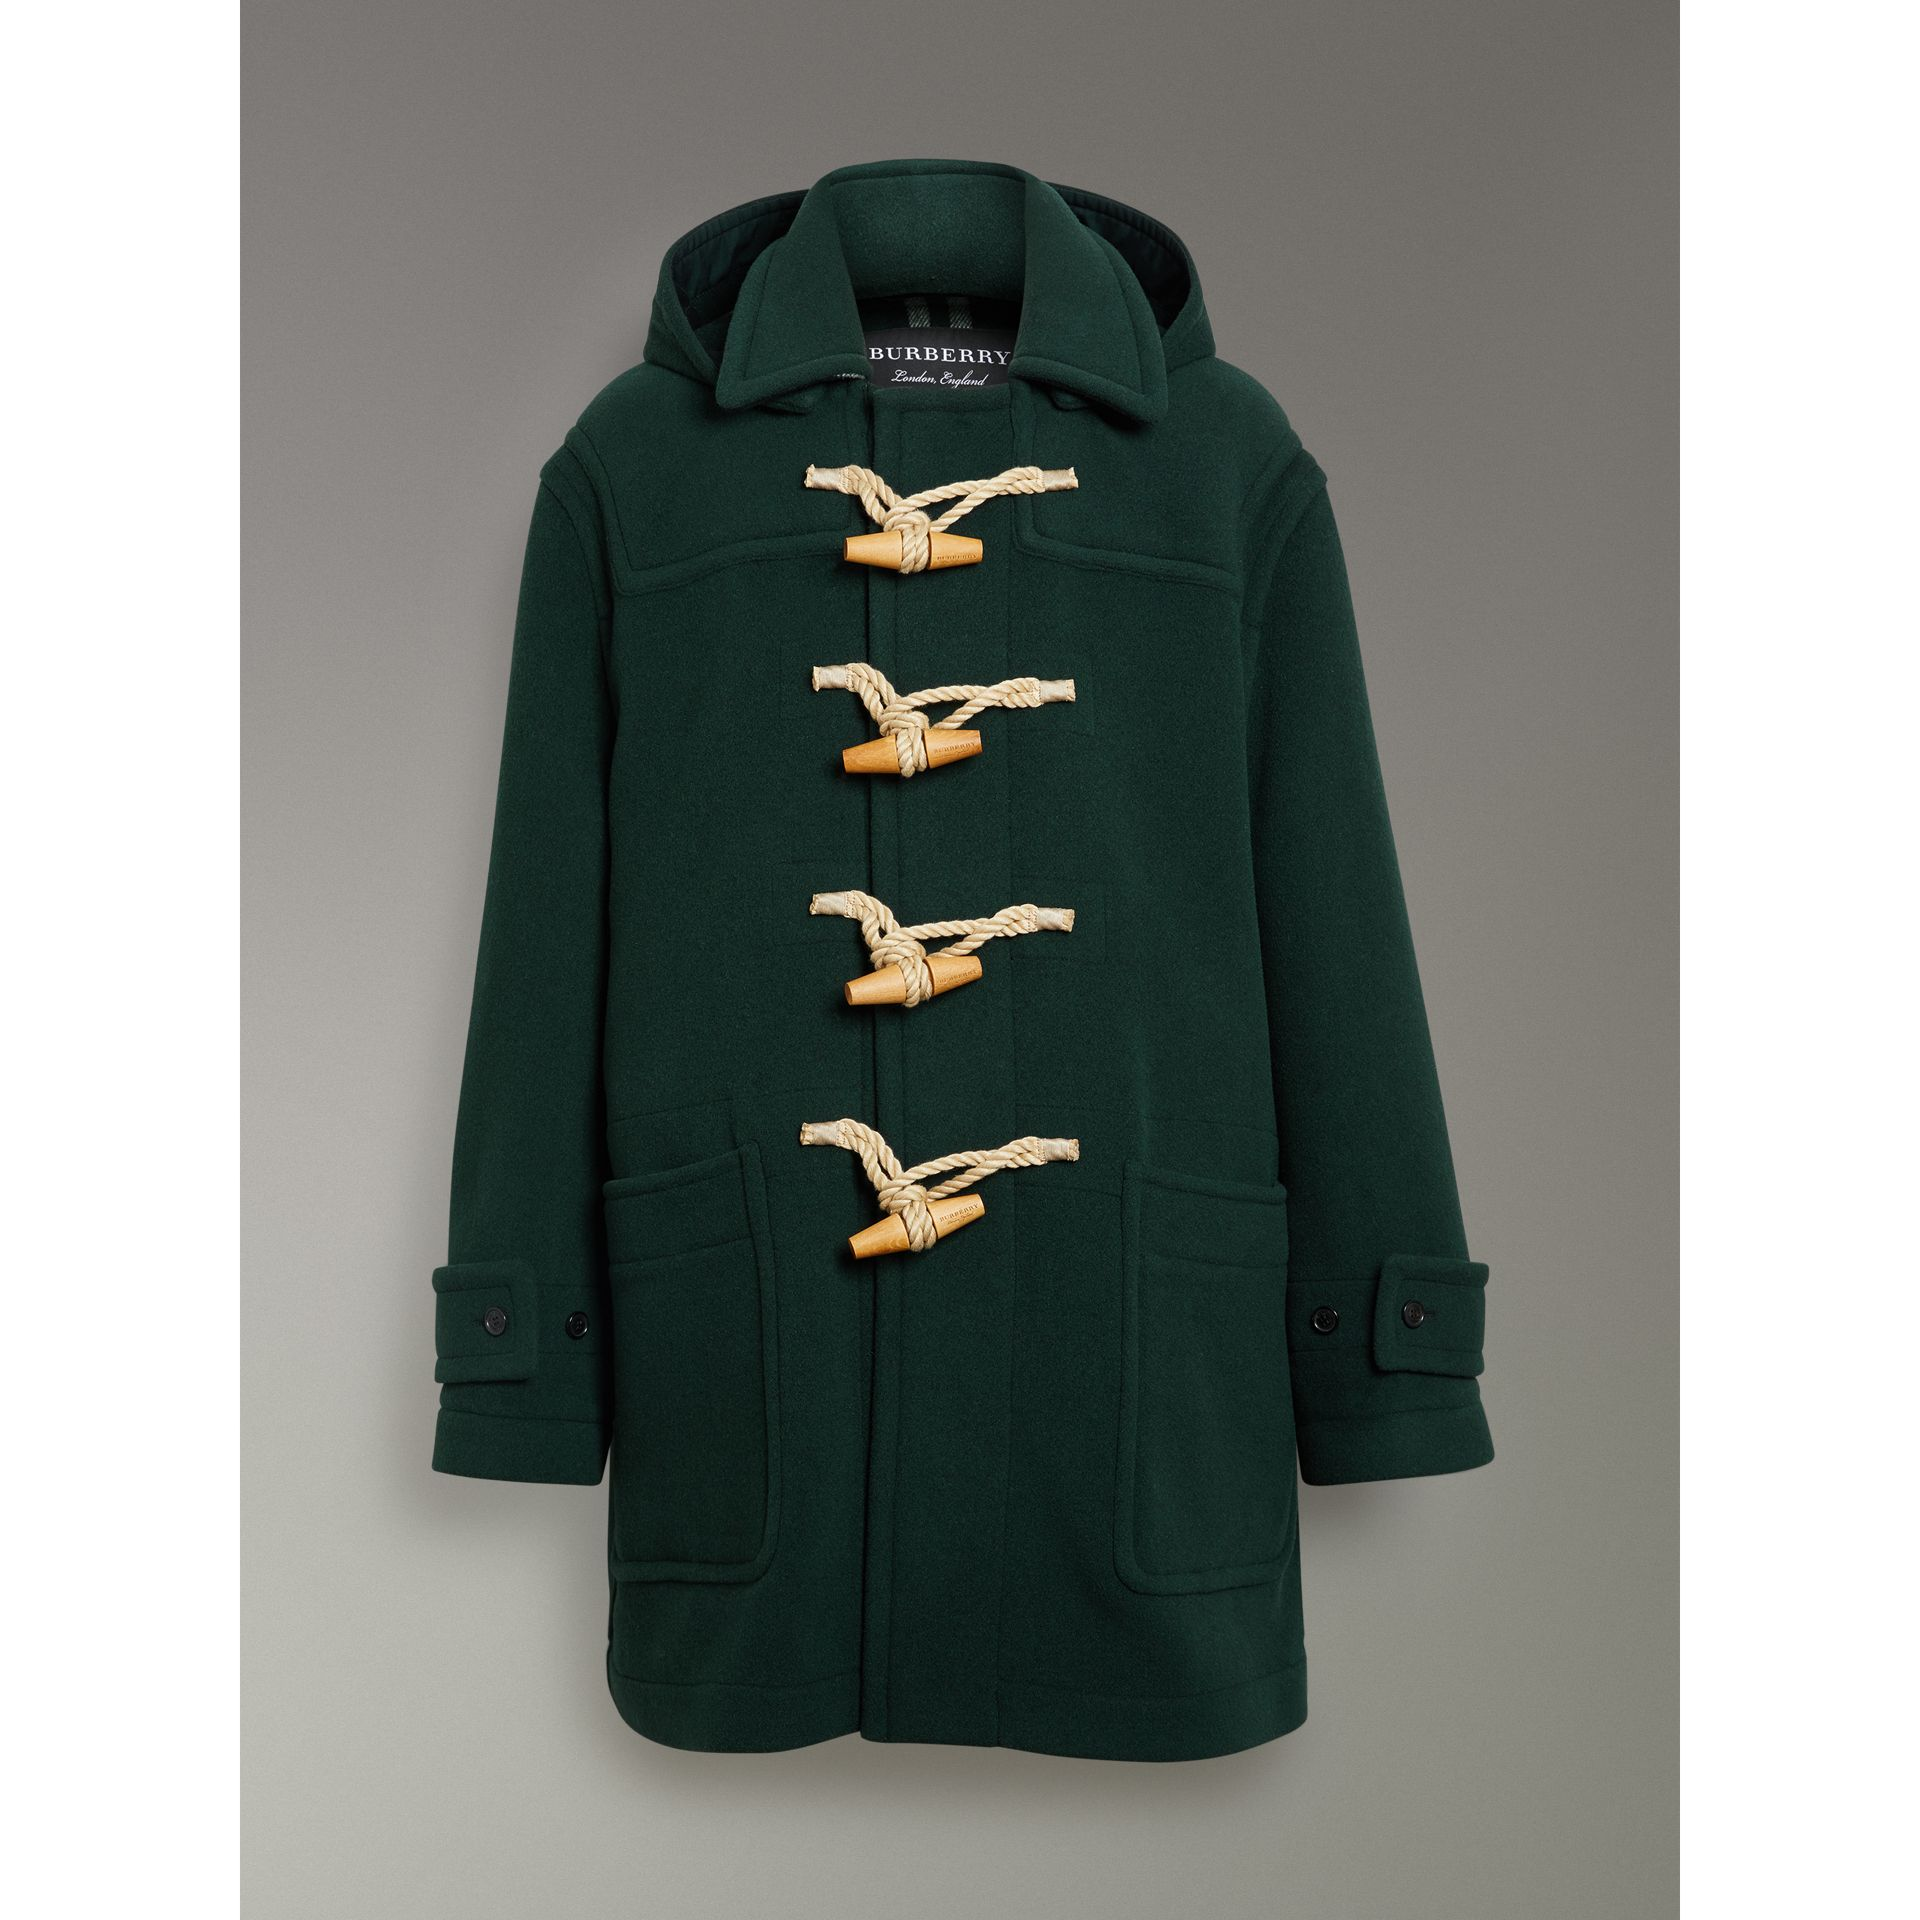 Gosha x Burberry Oversized Duffle Coat in Dark Forest Green | Burberry - gallery image 3